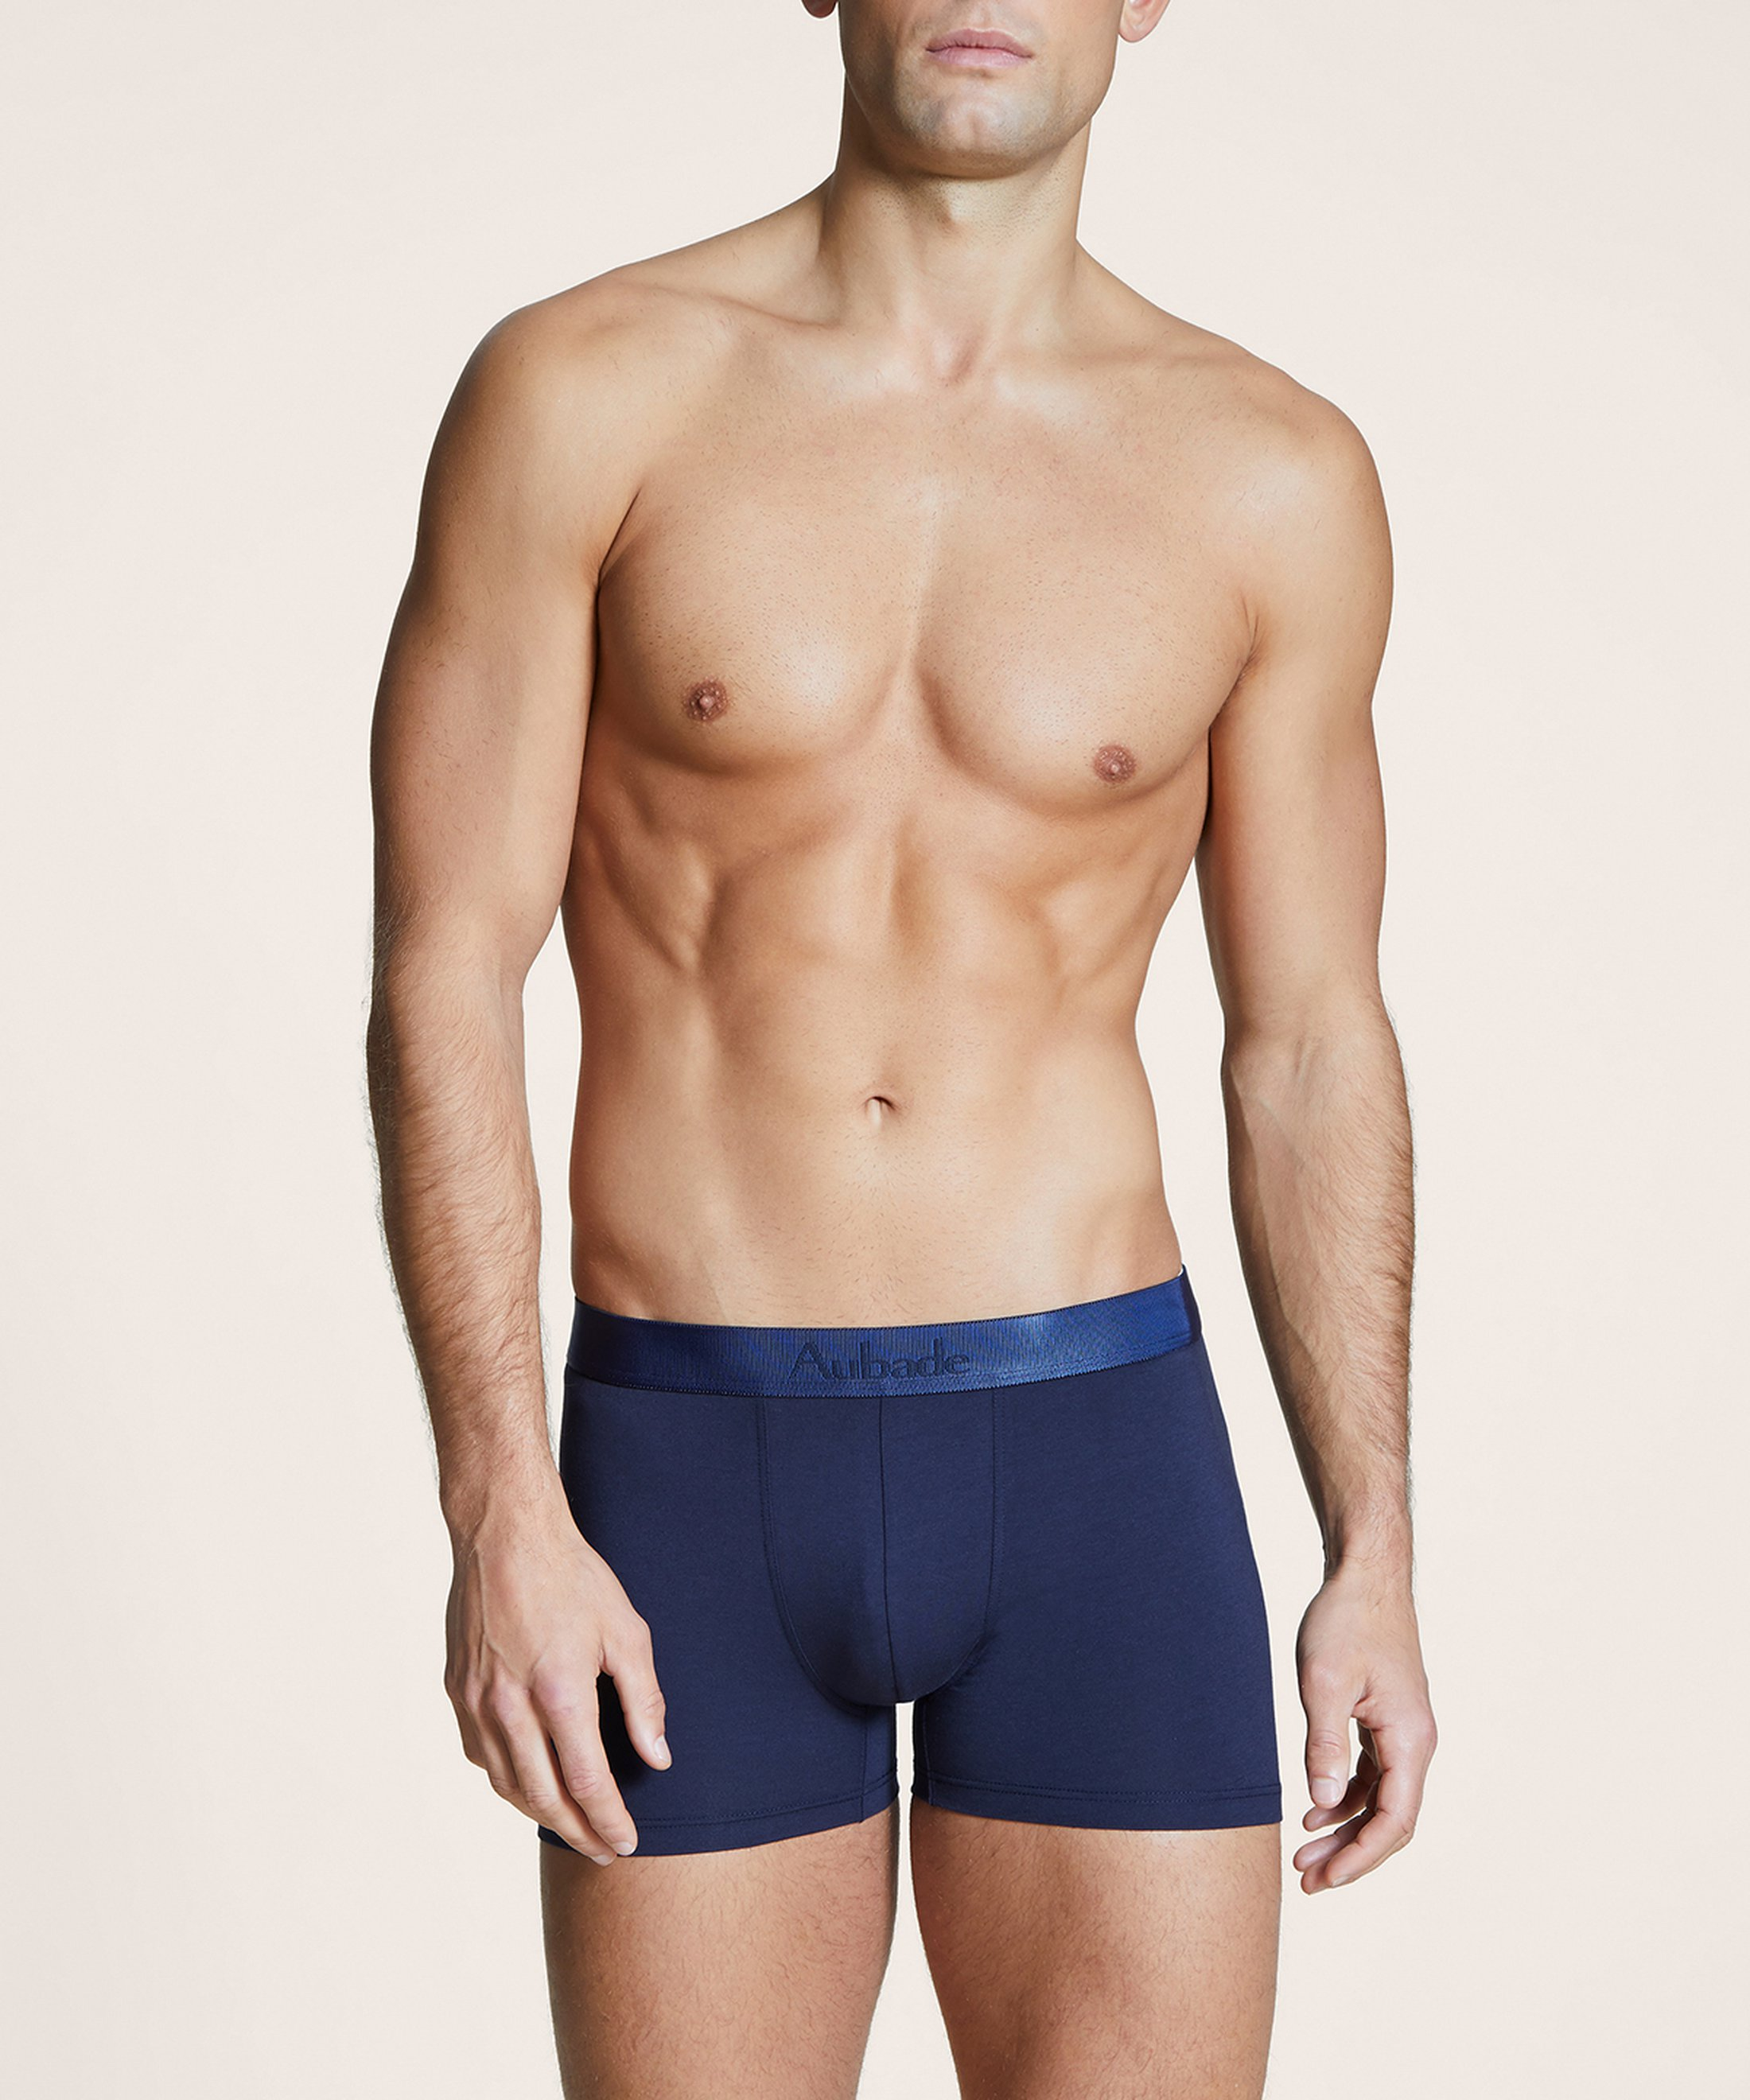 AUBADE HOMME Two boxers pack Red Menottes and plain Navy | Aubade